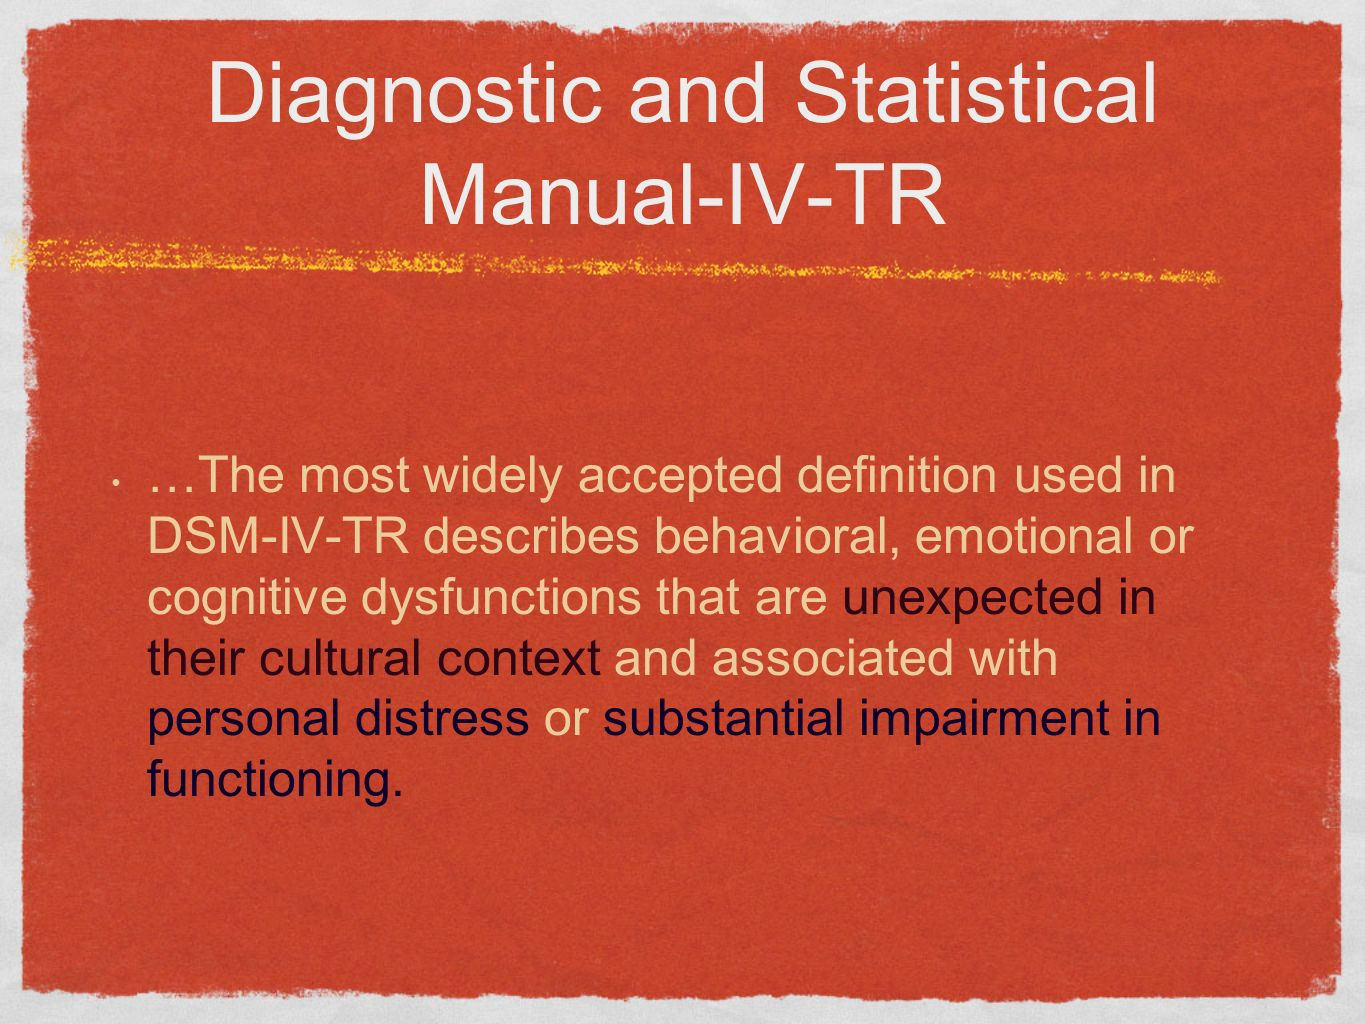 Diagnostic and Statistical Manual-IV-TR